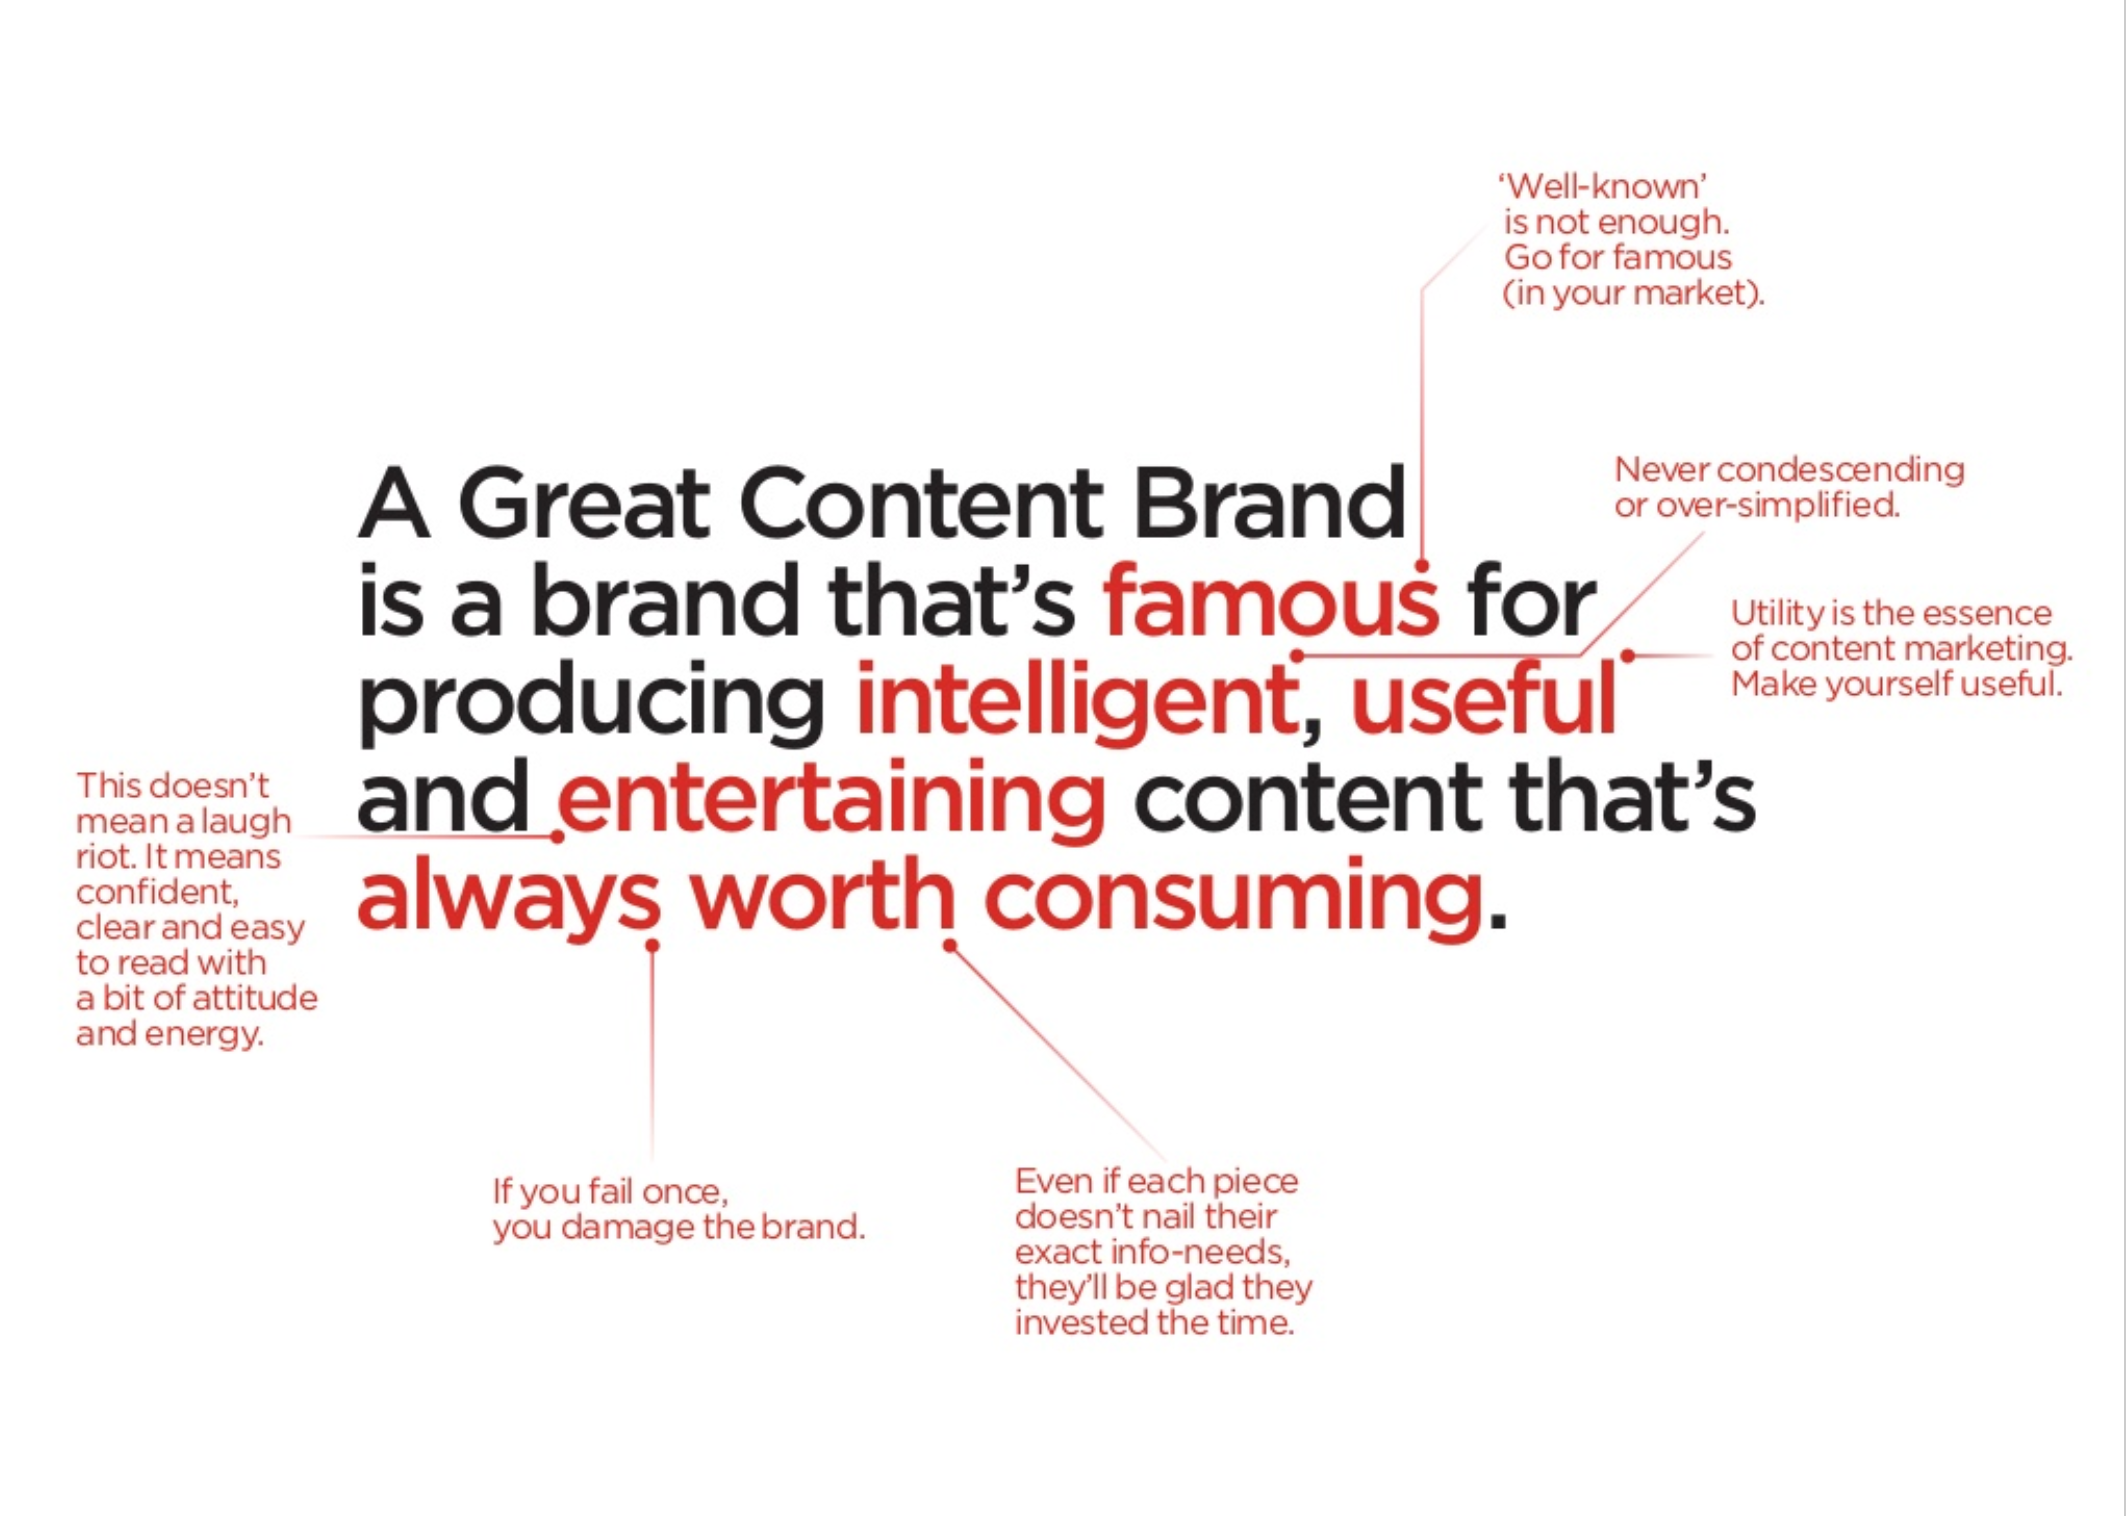 https://www.easel.ly/blog/wp-content/uploads/2018/12/educate-your-customers-with-useful-content.png